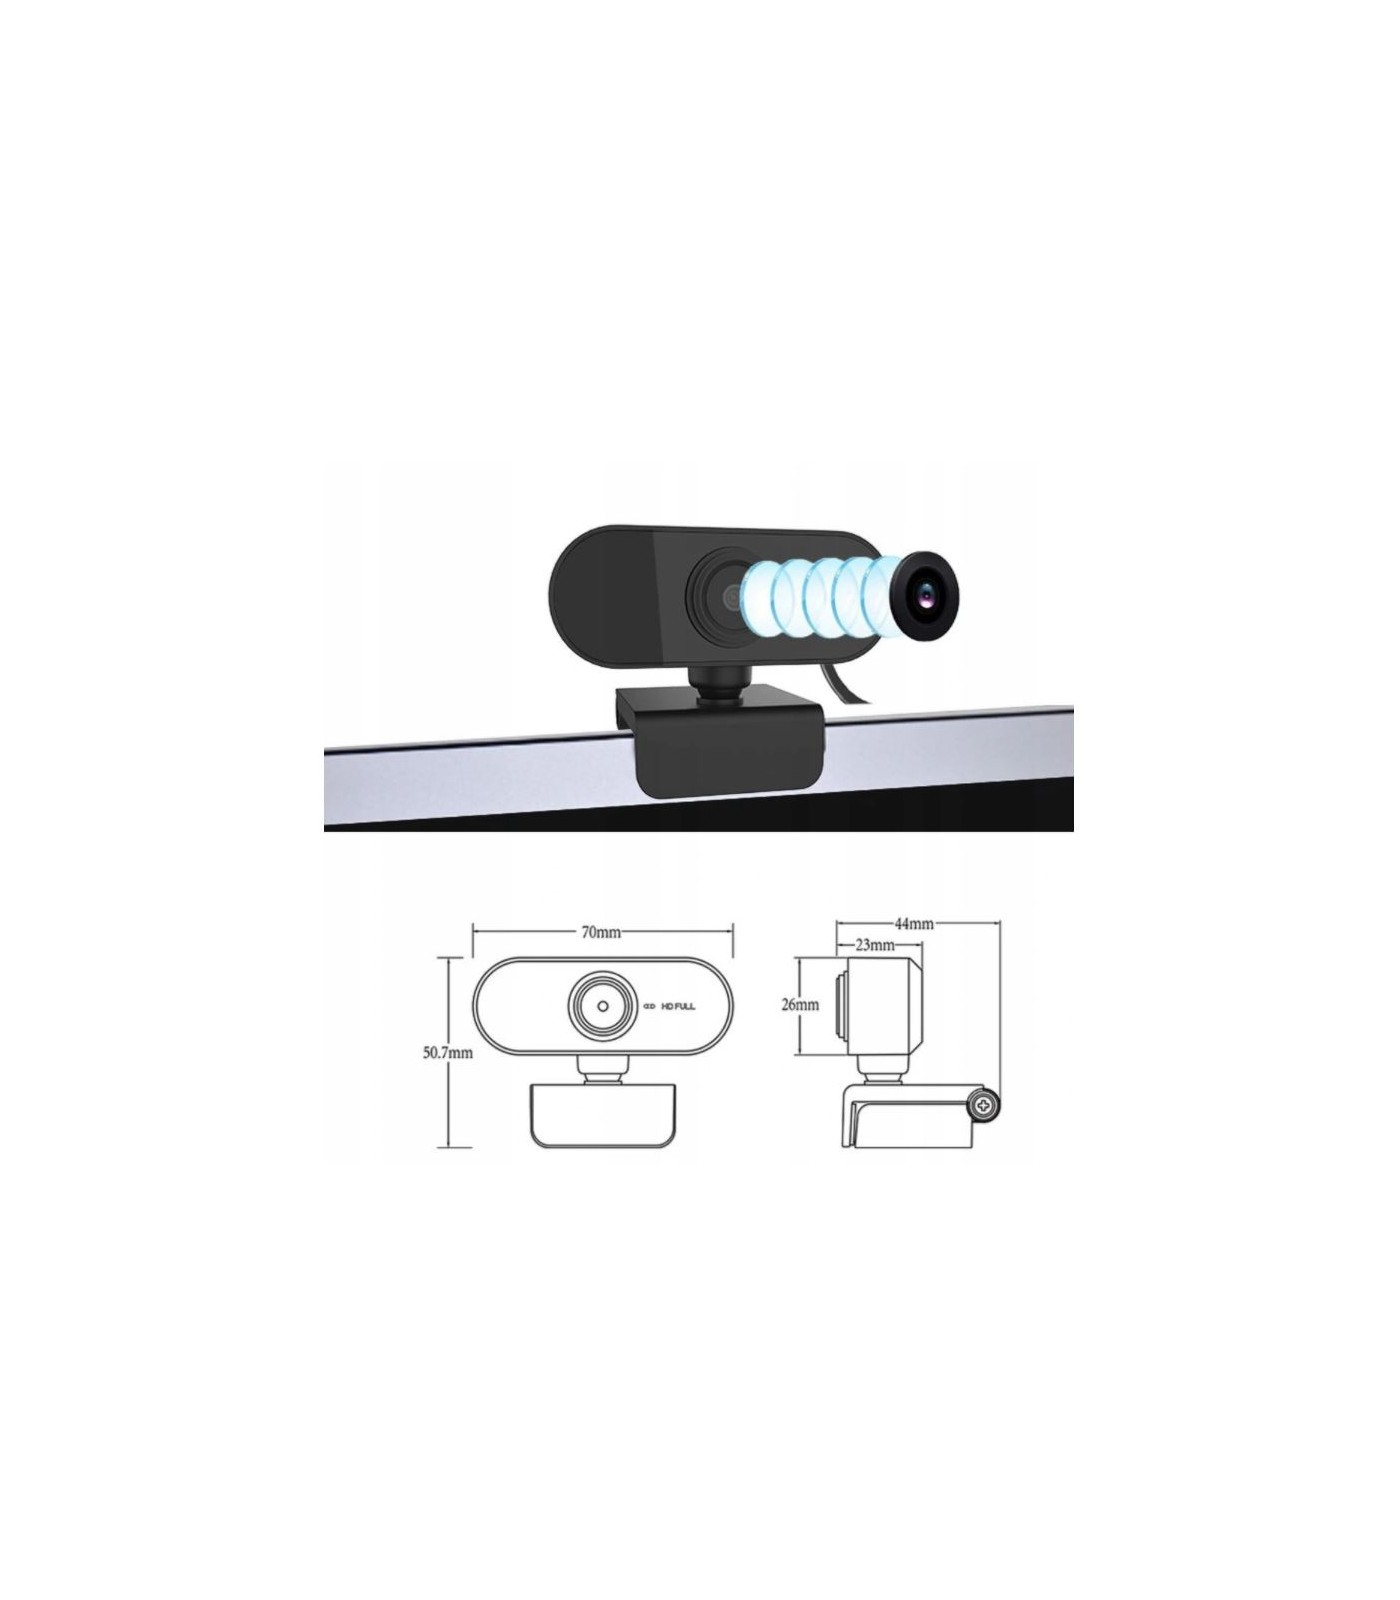 Kamera kamerka internetowa WebCam Full-HD 1080p 2 mpix do laptopa i komputera stacjonarnego.